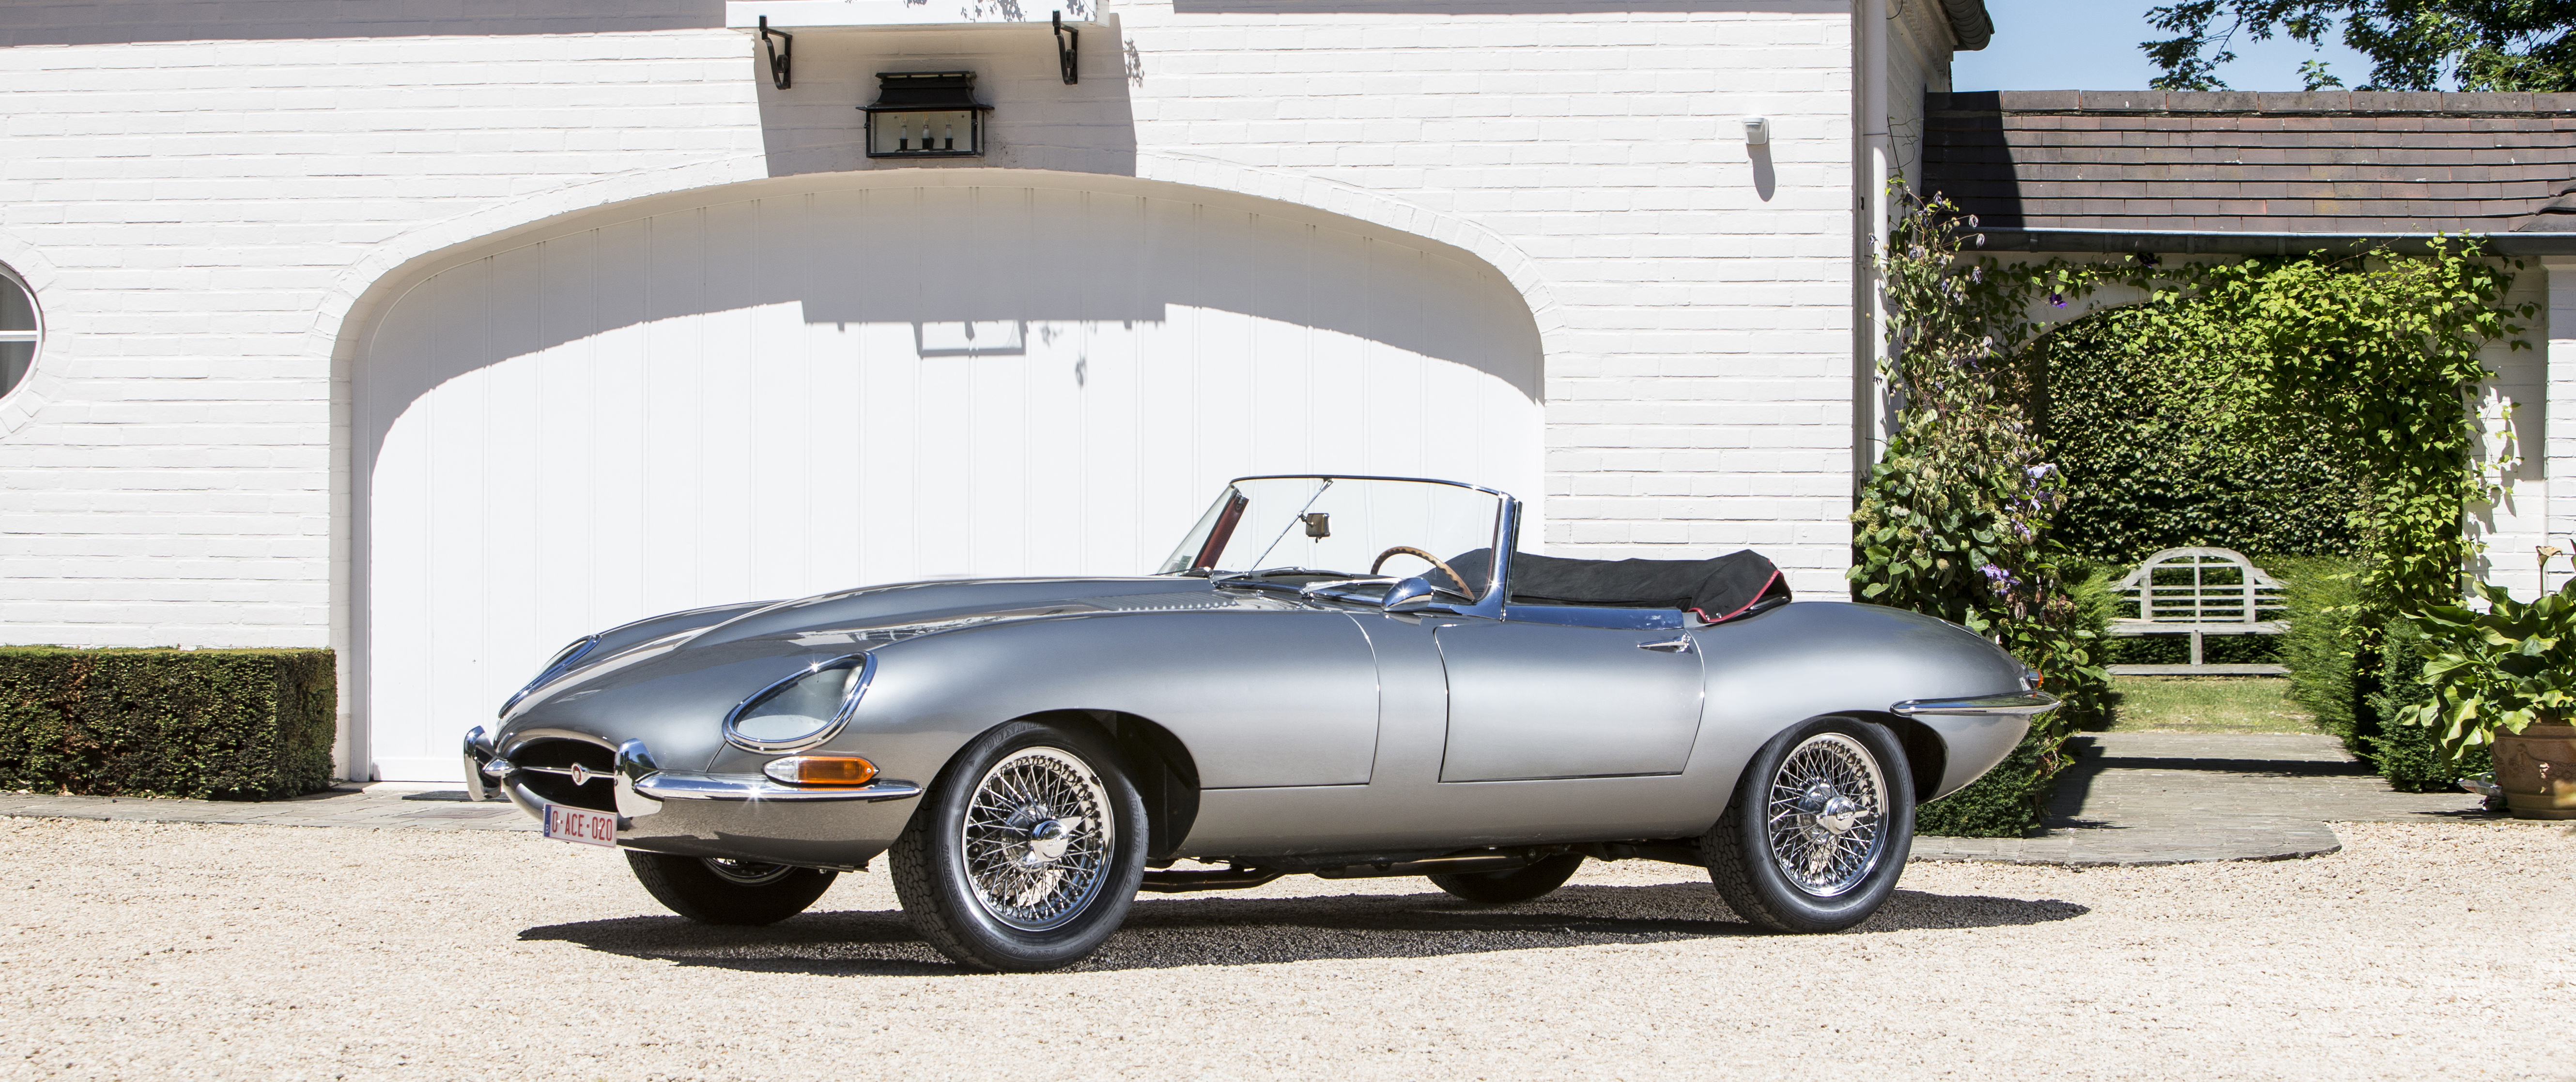 The Jaguar E Type Is The Most Beautiful Car Ever Made Gentleman S Journal